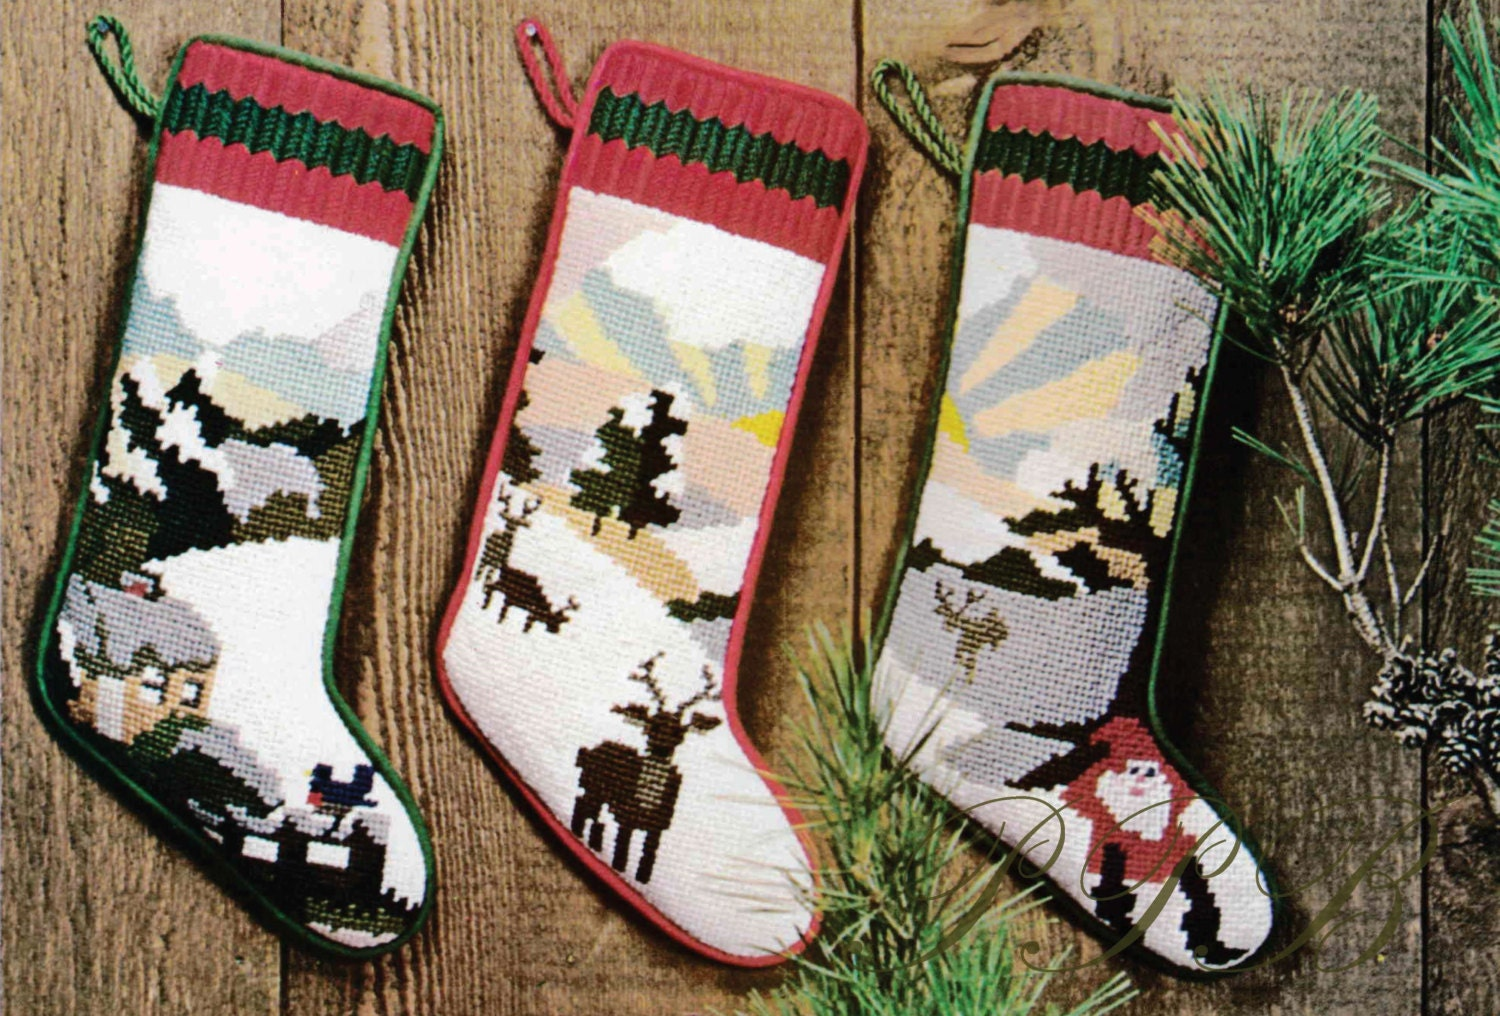 Christmas Stockings Needlepoint Patterns 3 Different